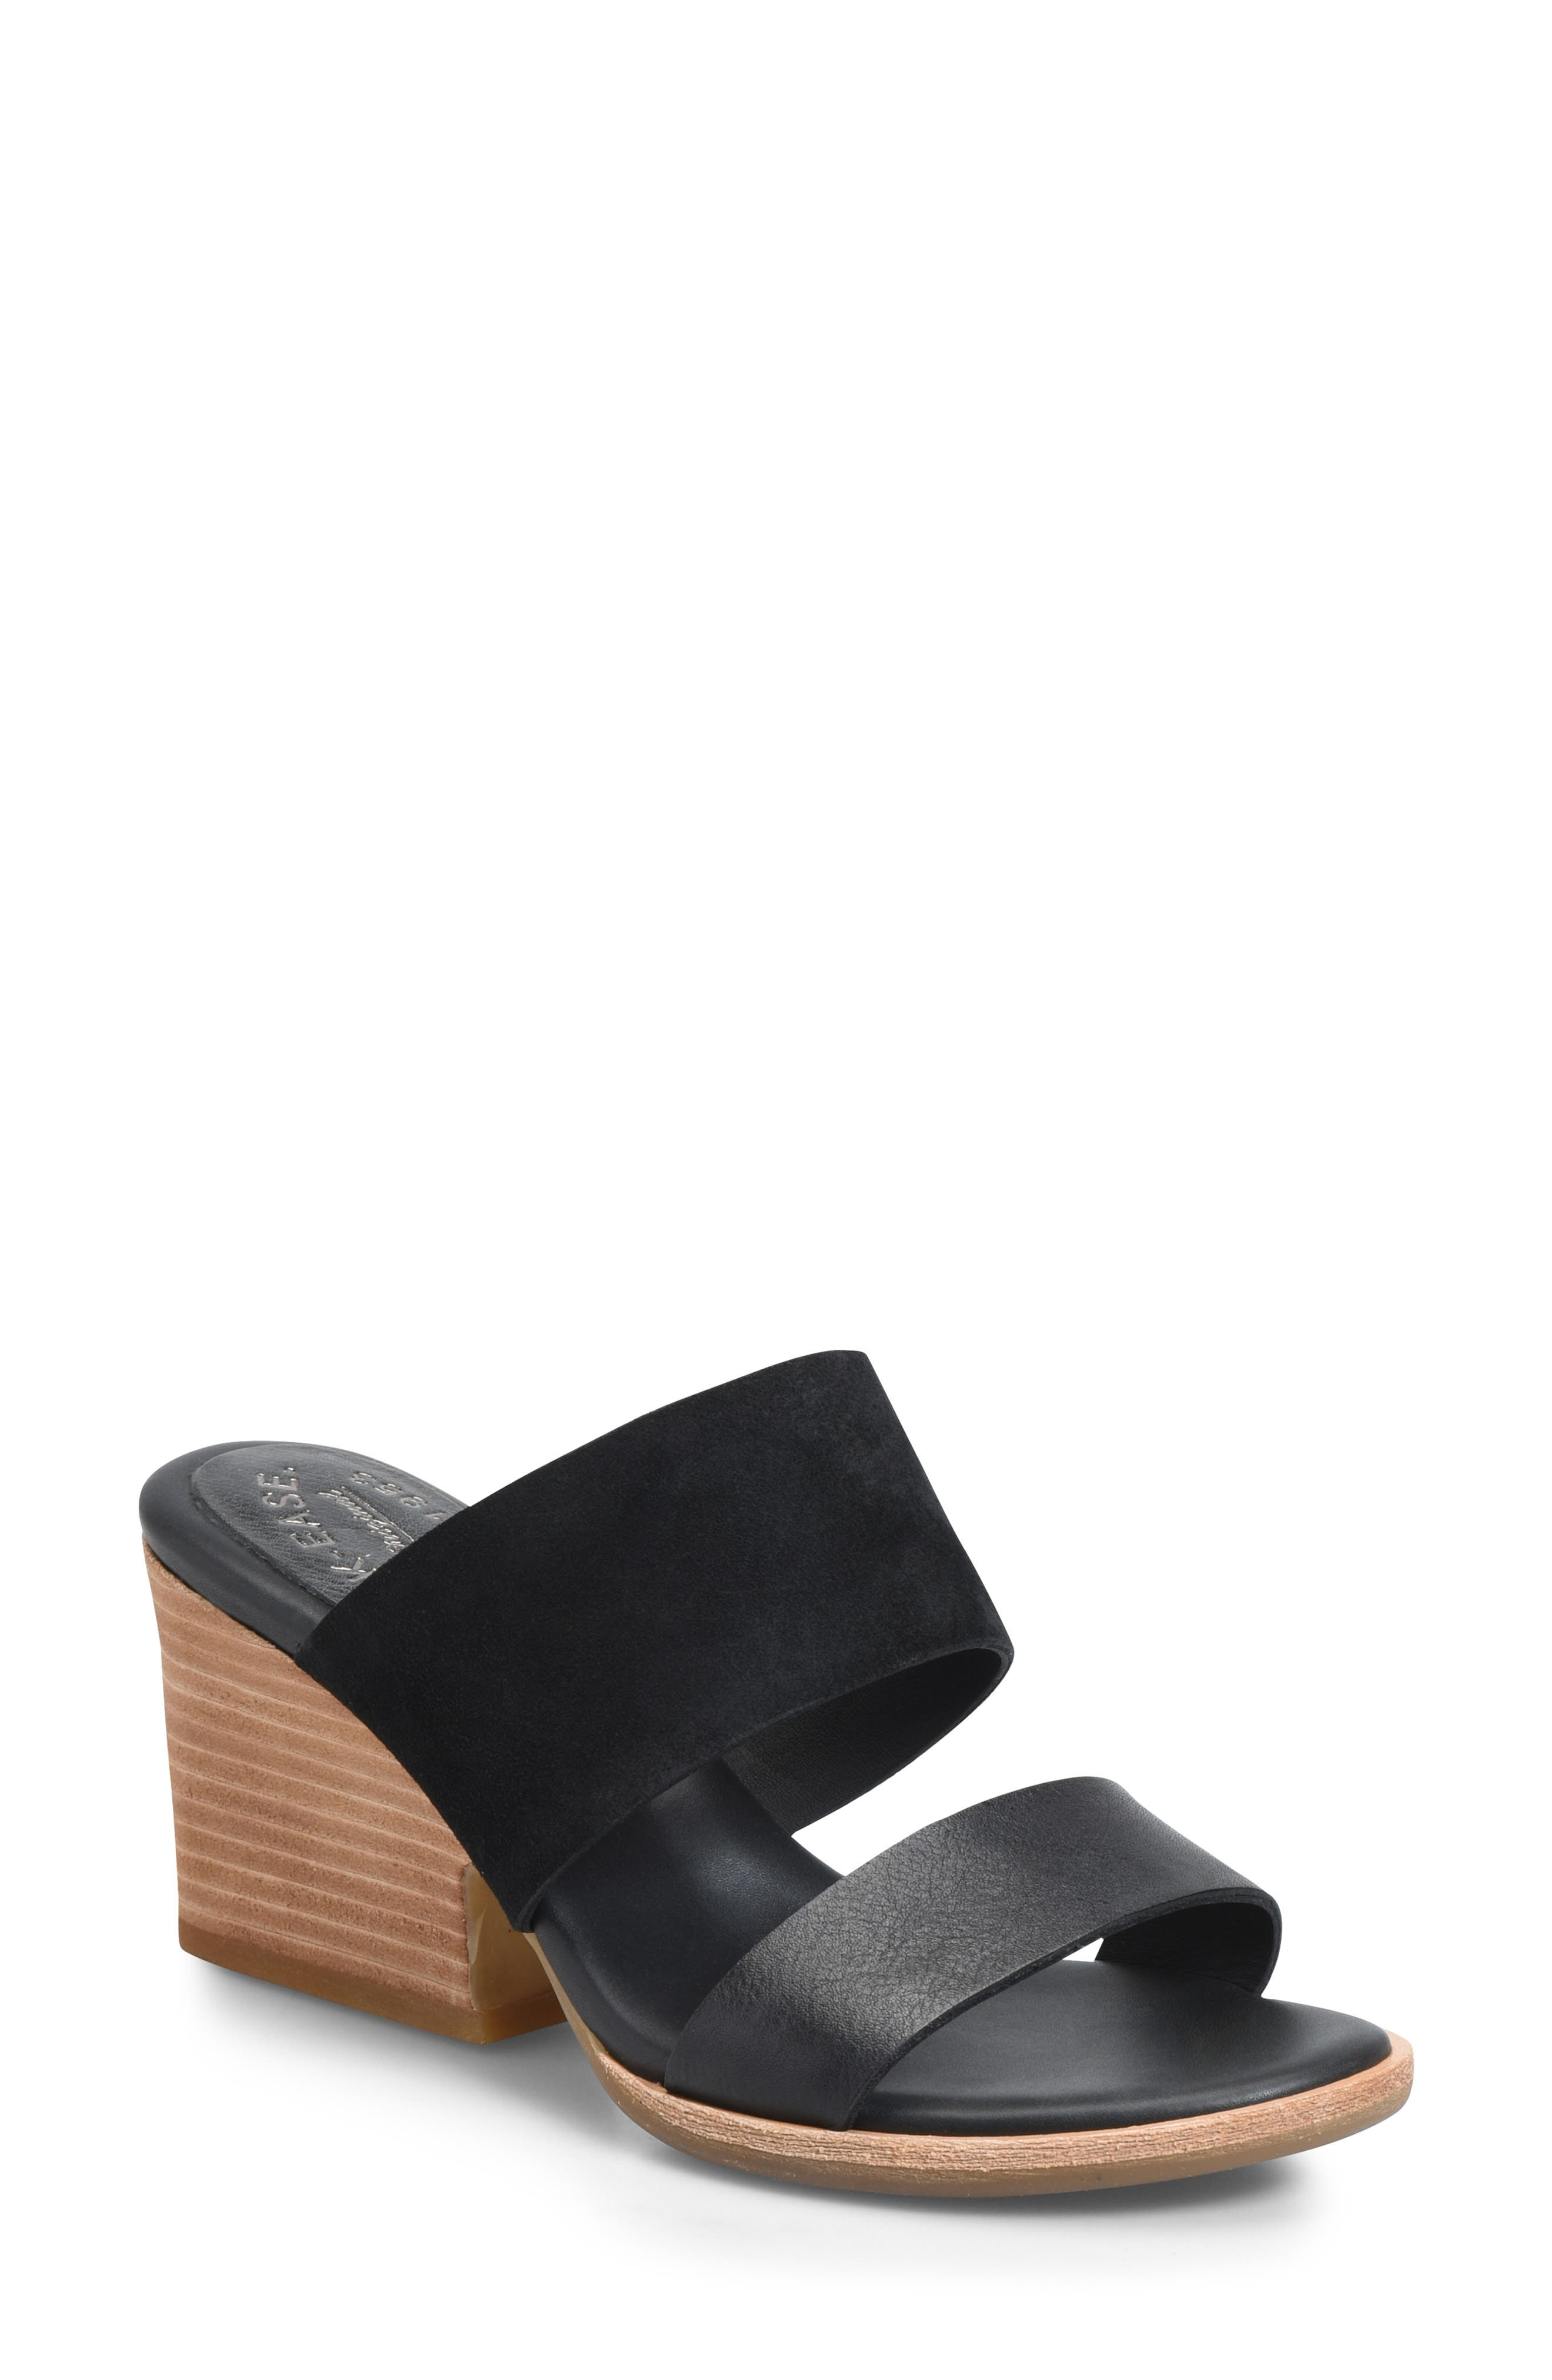 Gorrie Slide Sandal, Main, color, BLACK/ BLACK LEATHER/ SUEDE